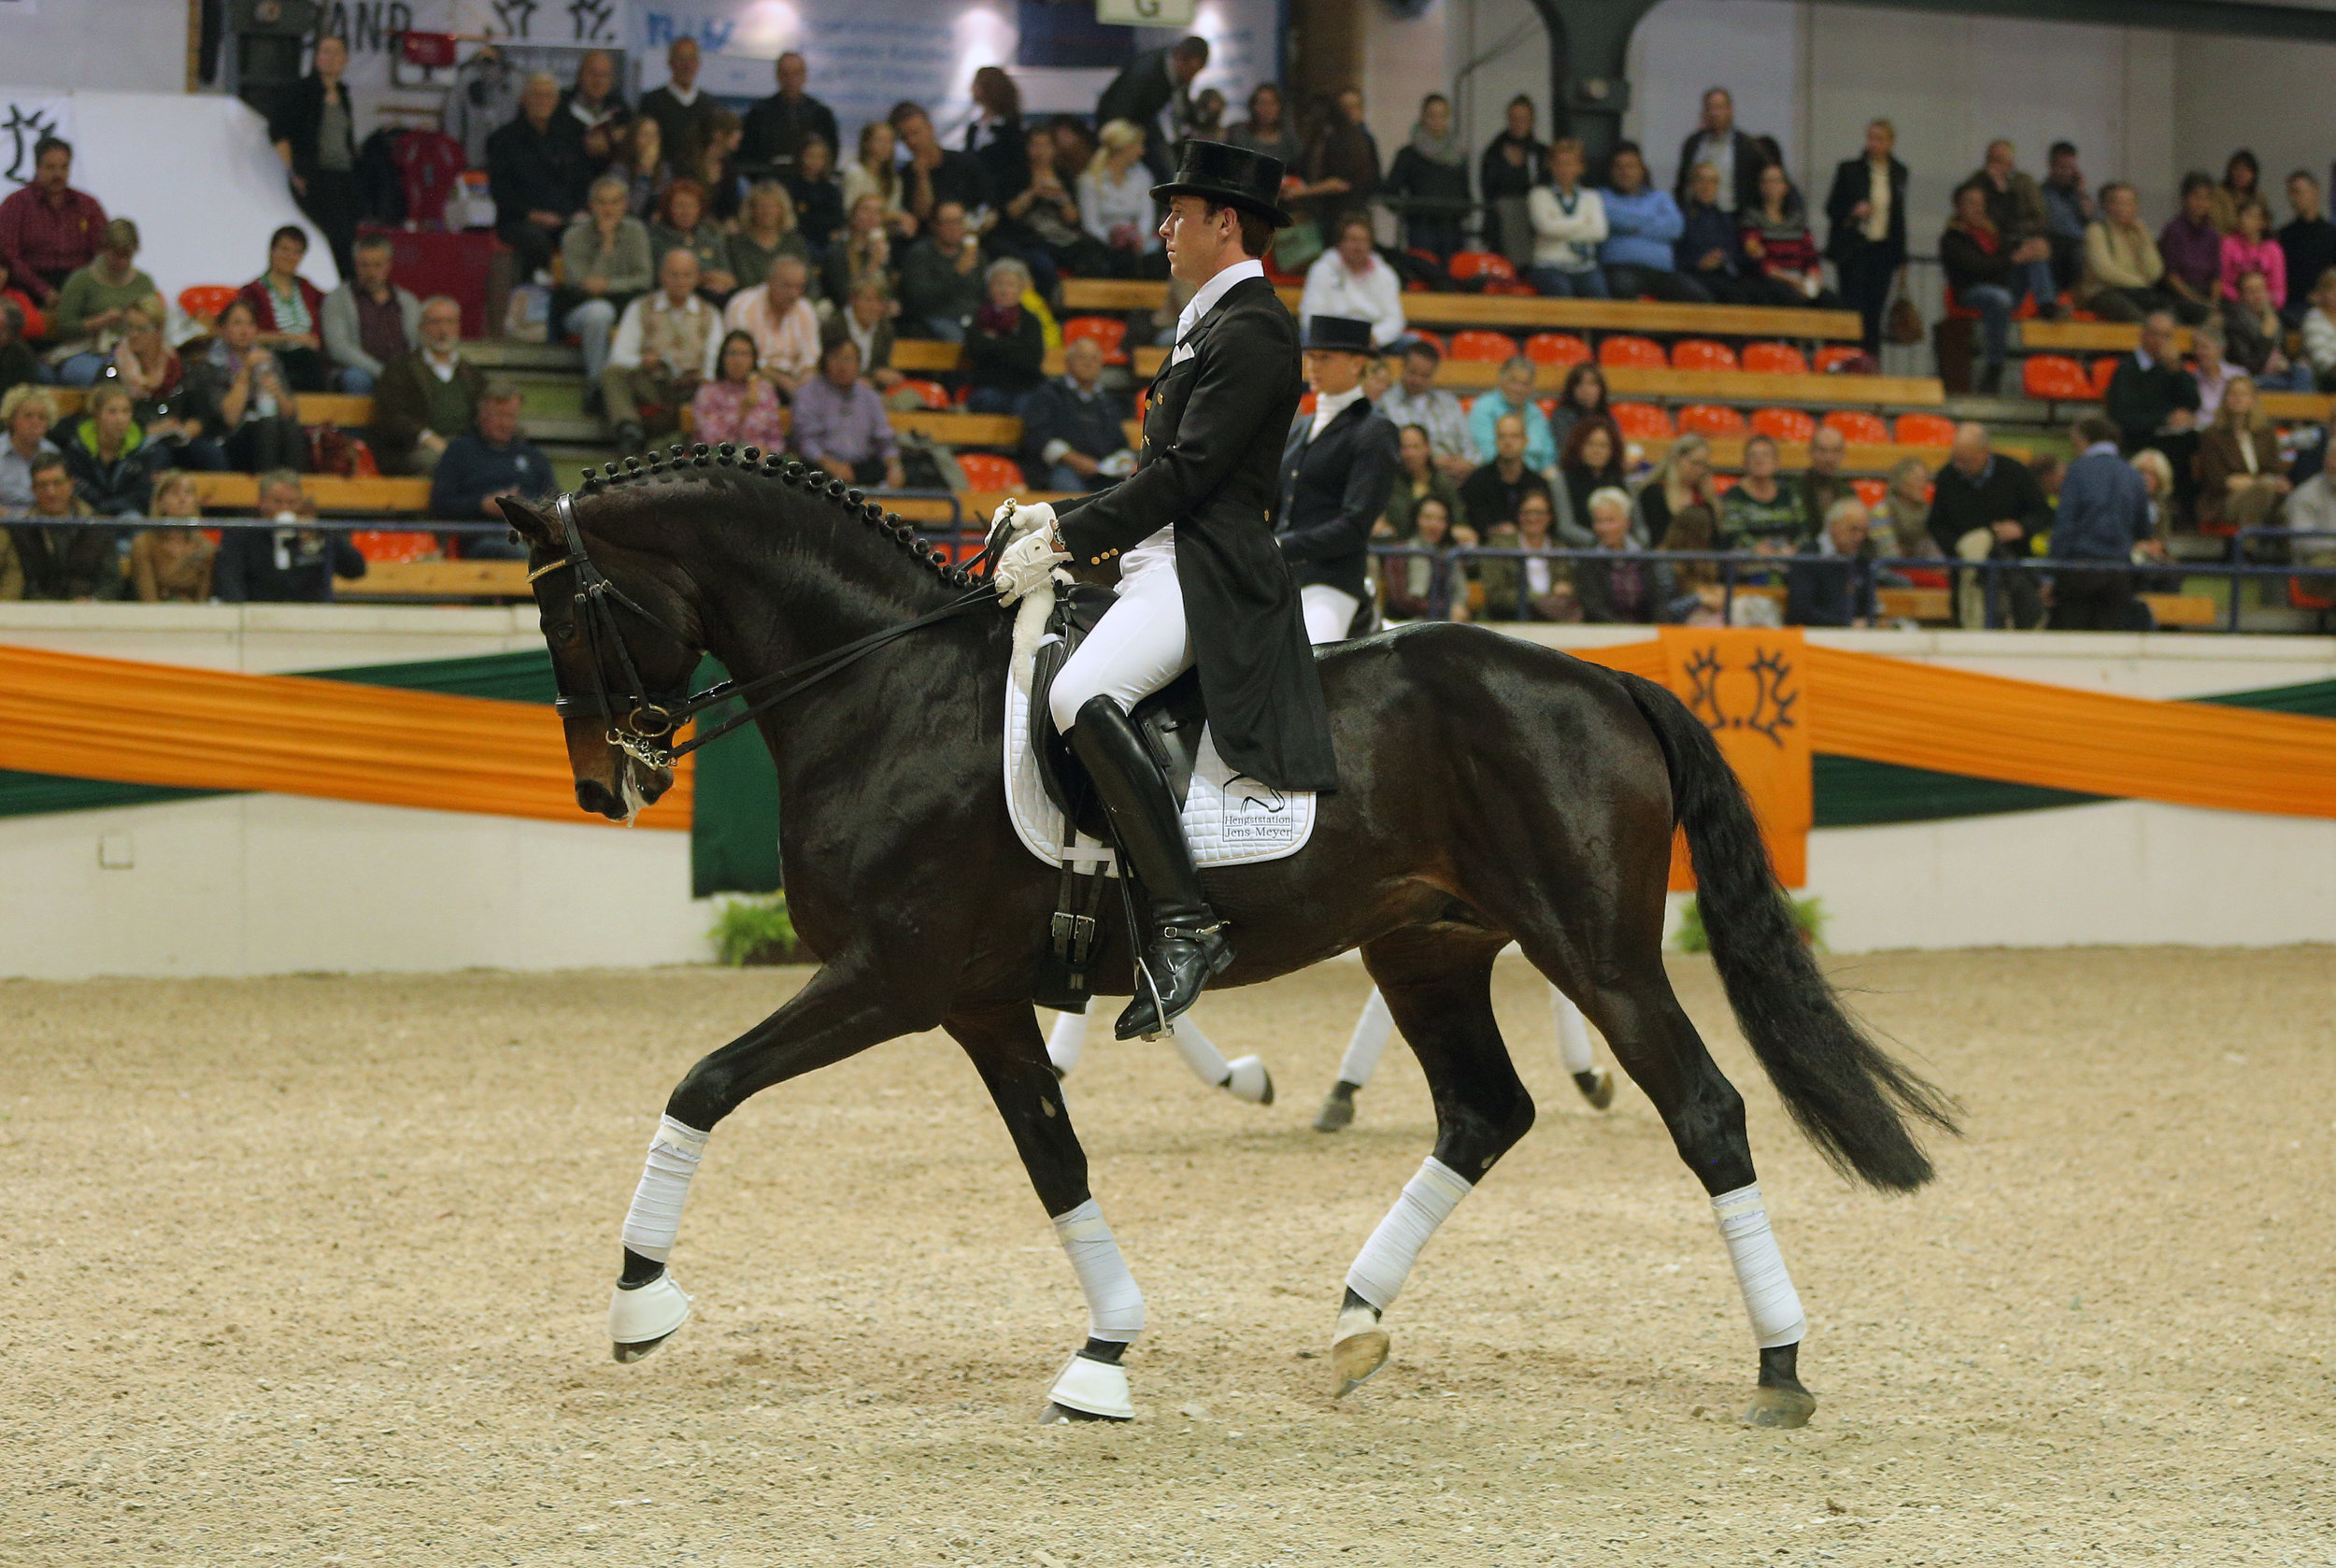 Elite Trakehner Stallion Herzensdieb, ridden by Steffen Frahm and owned by Leatherdale Farms.